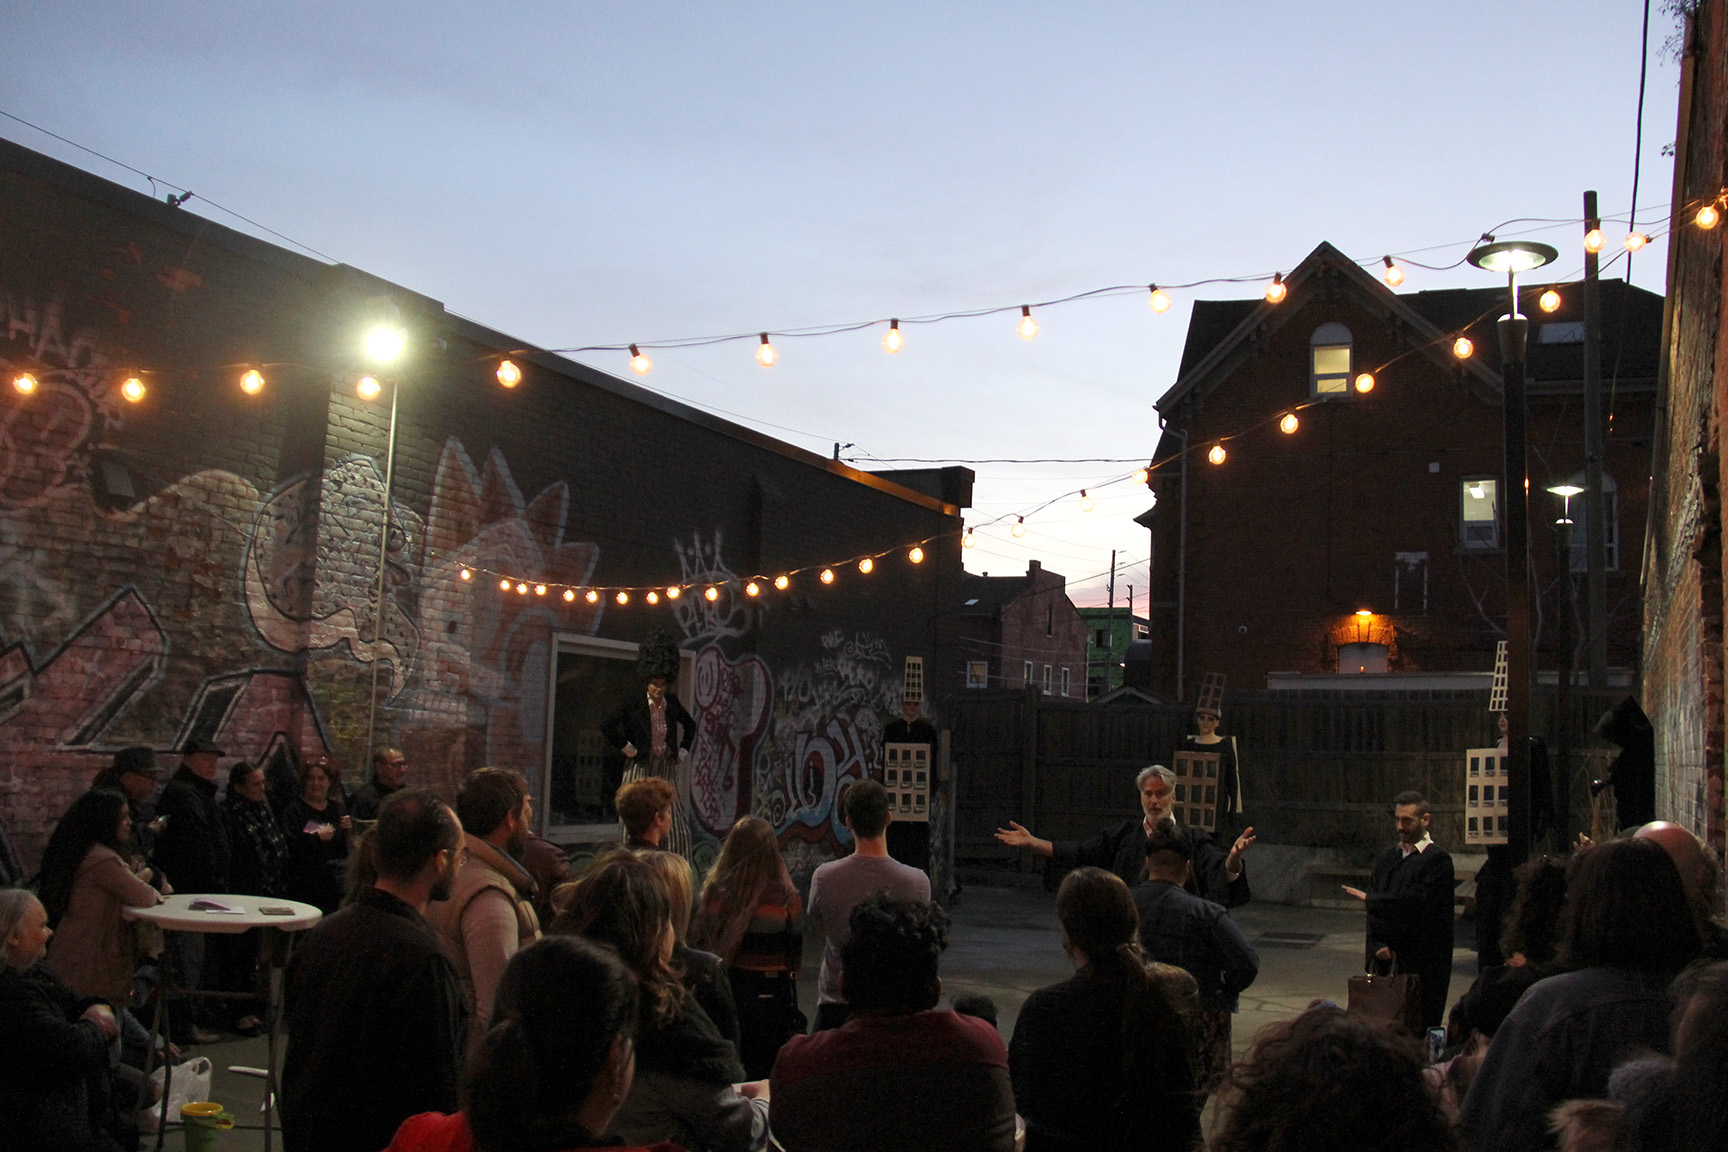 A photo of the Inc.'s courtyard at dusk, framed by the silhouette of the Notre Dame House in the background. There are strings of warm, spherical lights attached to the brick walls on either side of the courtyard. There are 20 or so people seated on fold-out chairs, watching a performance. The performers are dressed in black robes.